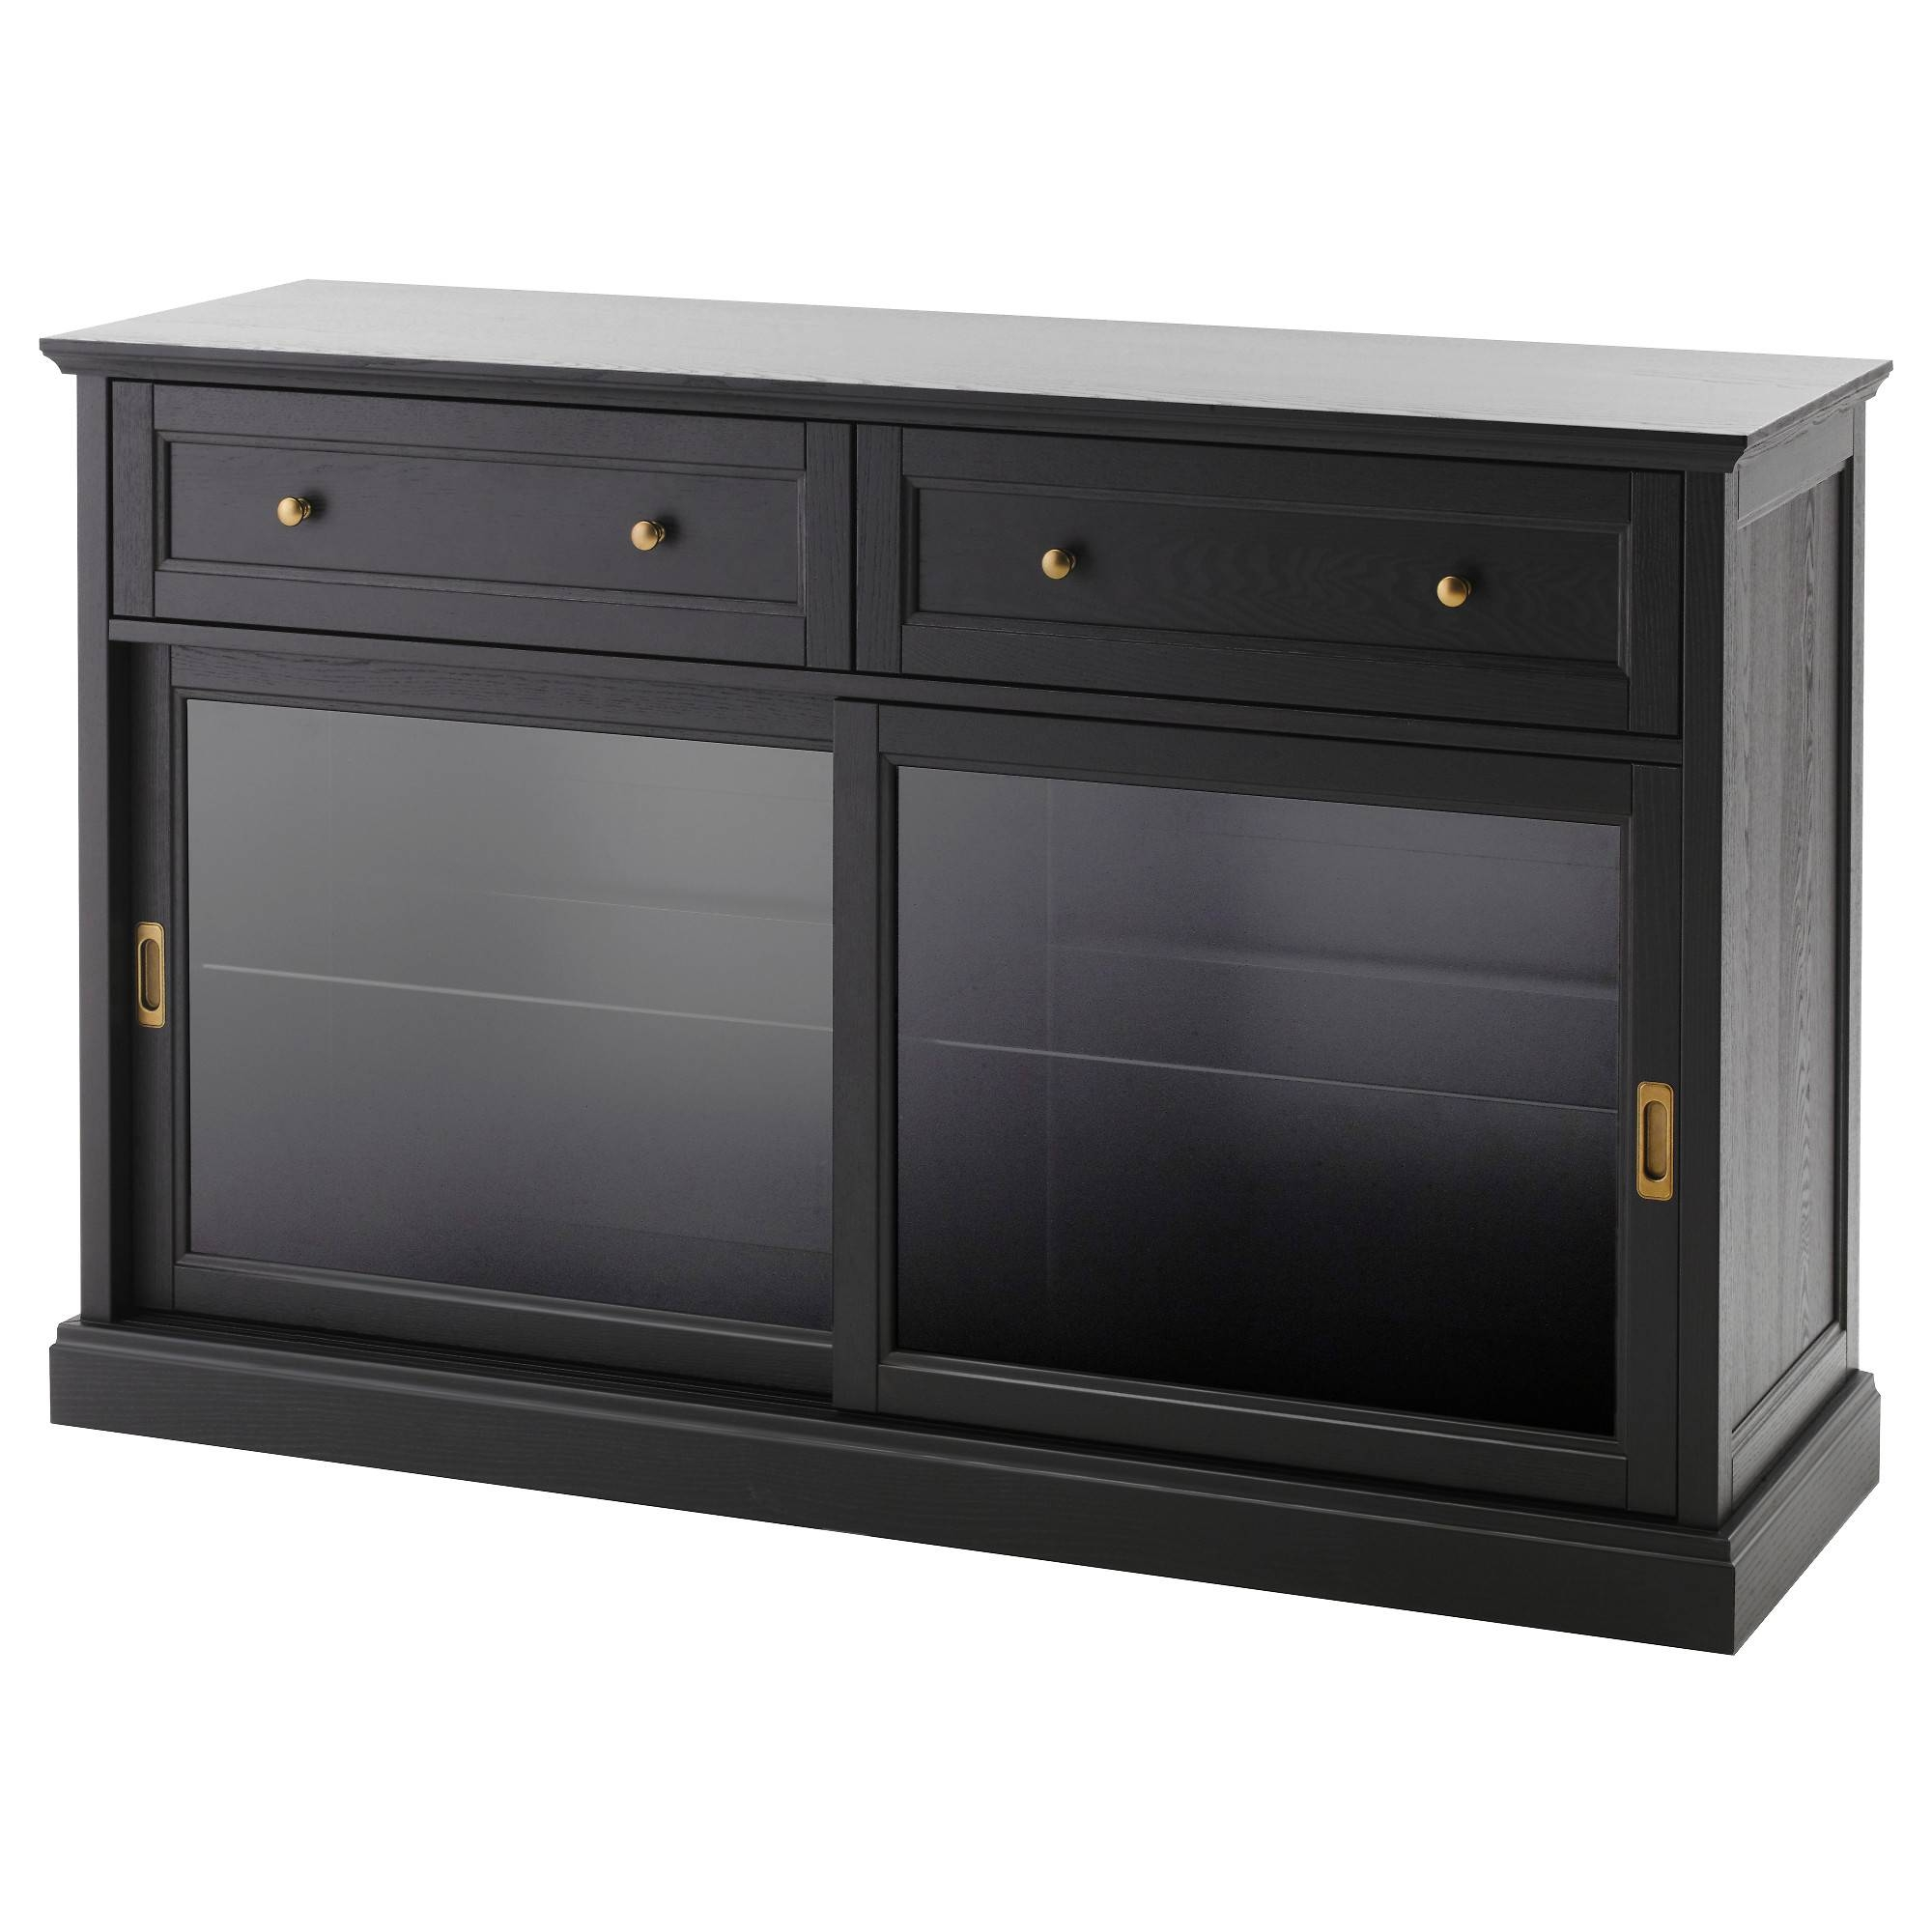 Buffet Tables & Sideboards - Ikea regarding Dark Grey Sideboards (Image 7 of 30)